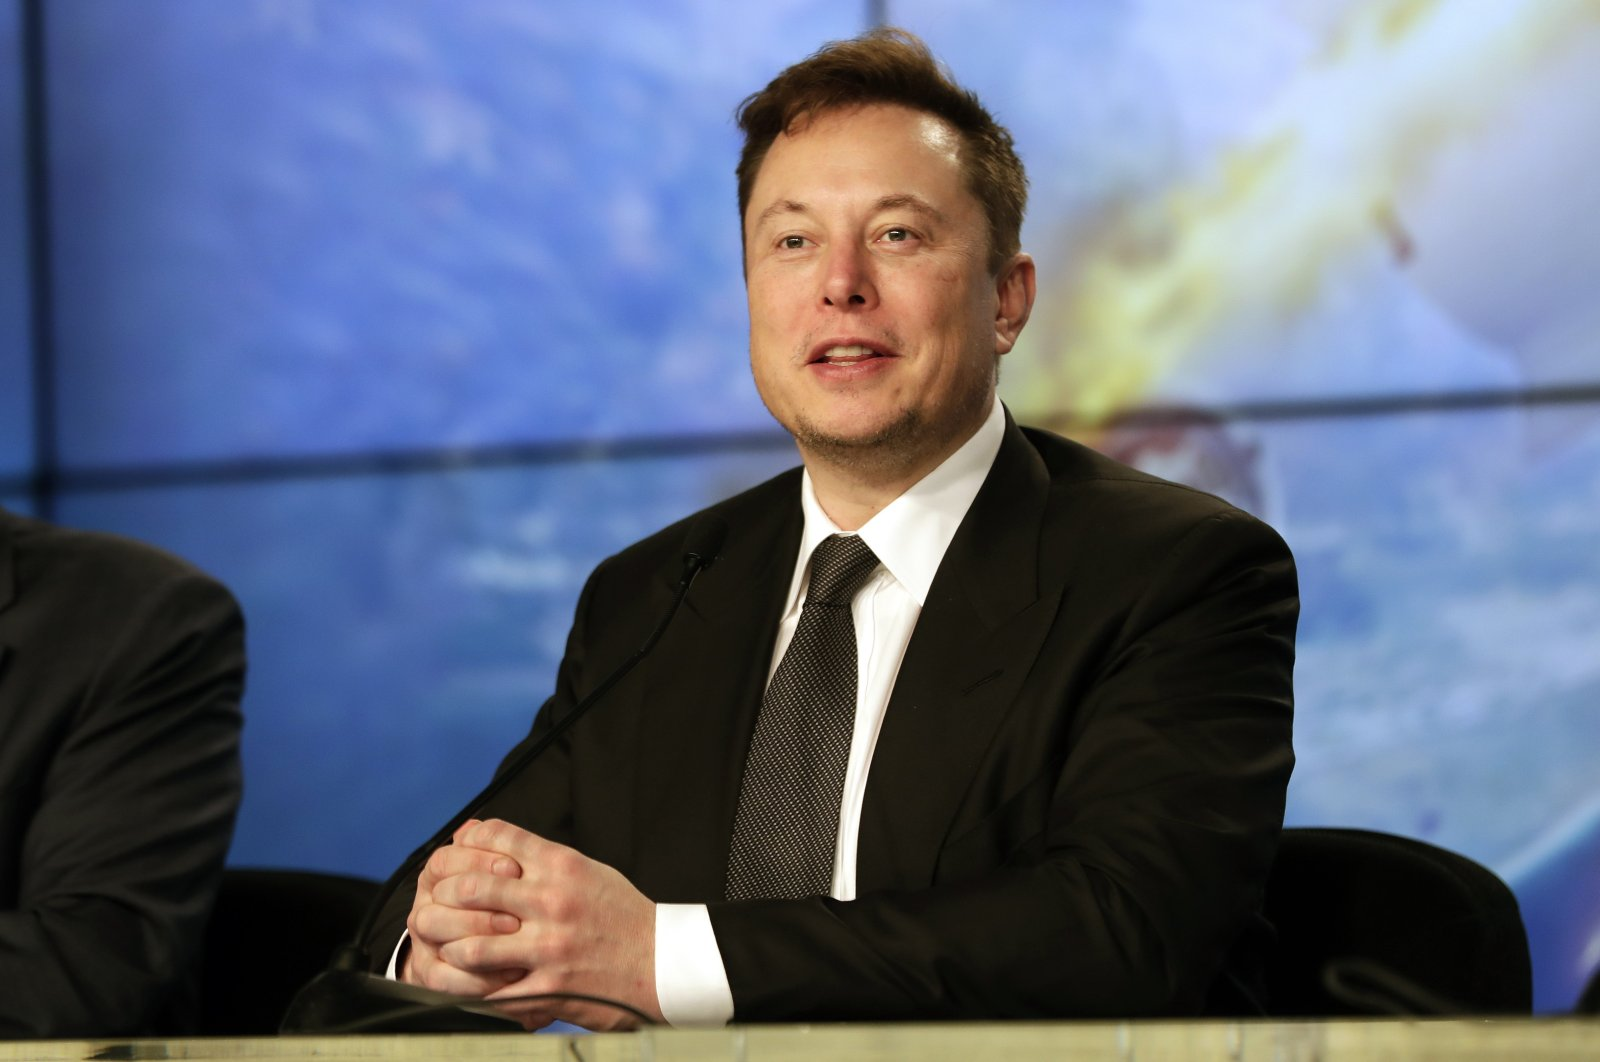 Elon Musk speaks during a news conference after a Falcon 9 SpaceX rocket test flight to demonstrate the capsule's emergency escape system at the Kennedy Space Center in Cape Canaveral, Florida, U.S., Jan. 19, 2020. (AP Photo/John Raoux, File)